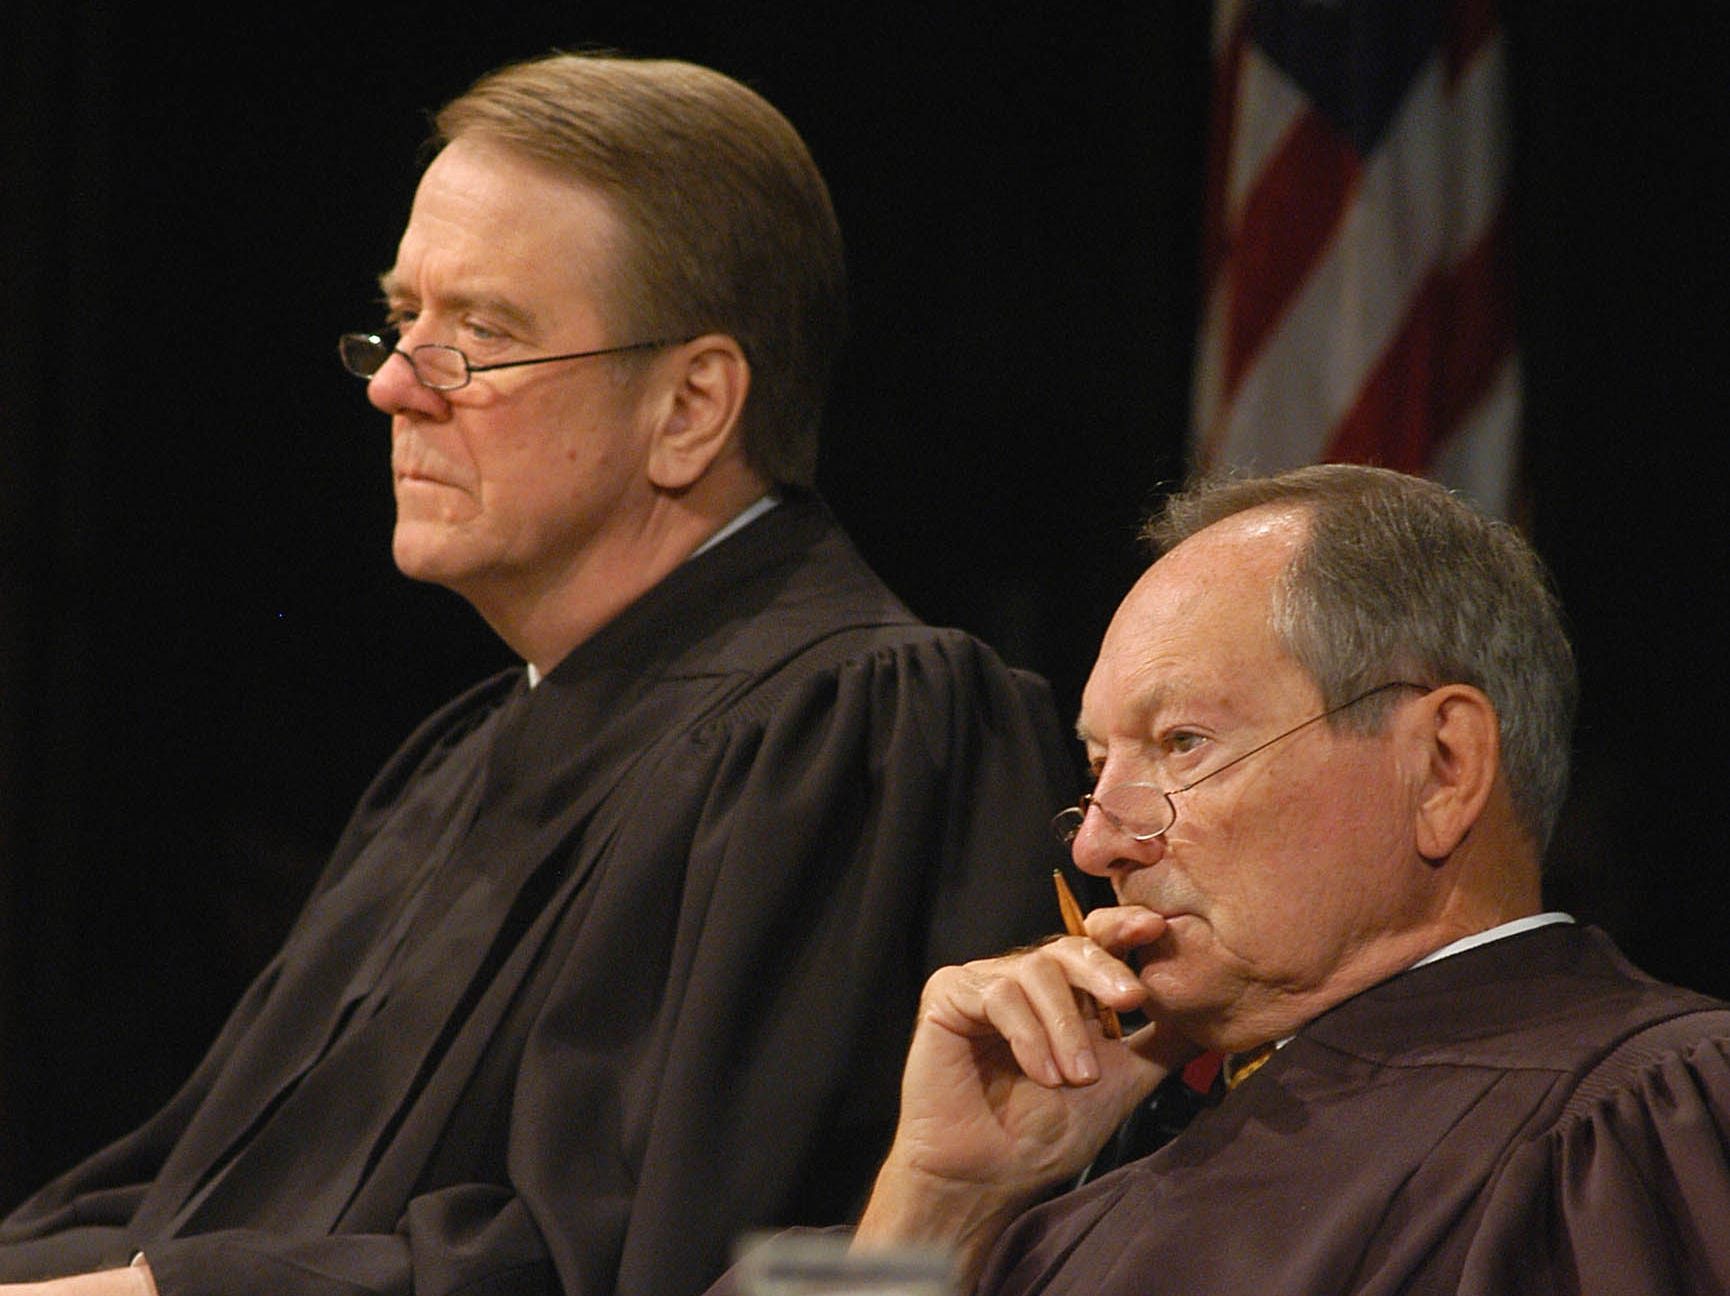 Justices Steven Zinter, left, and Richard Sabers listen to arguments appealing a 40 year sentence for a man who was video taping adolescent girls in his bathroom without their knowledge Wednesday, Oct. 5, 2005 at the South Dakota Supreme Court being held at Northern State University in Aberdeen, S.D. (AP Photo/Doug Dreyer)